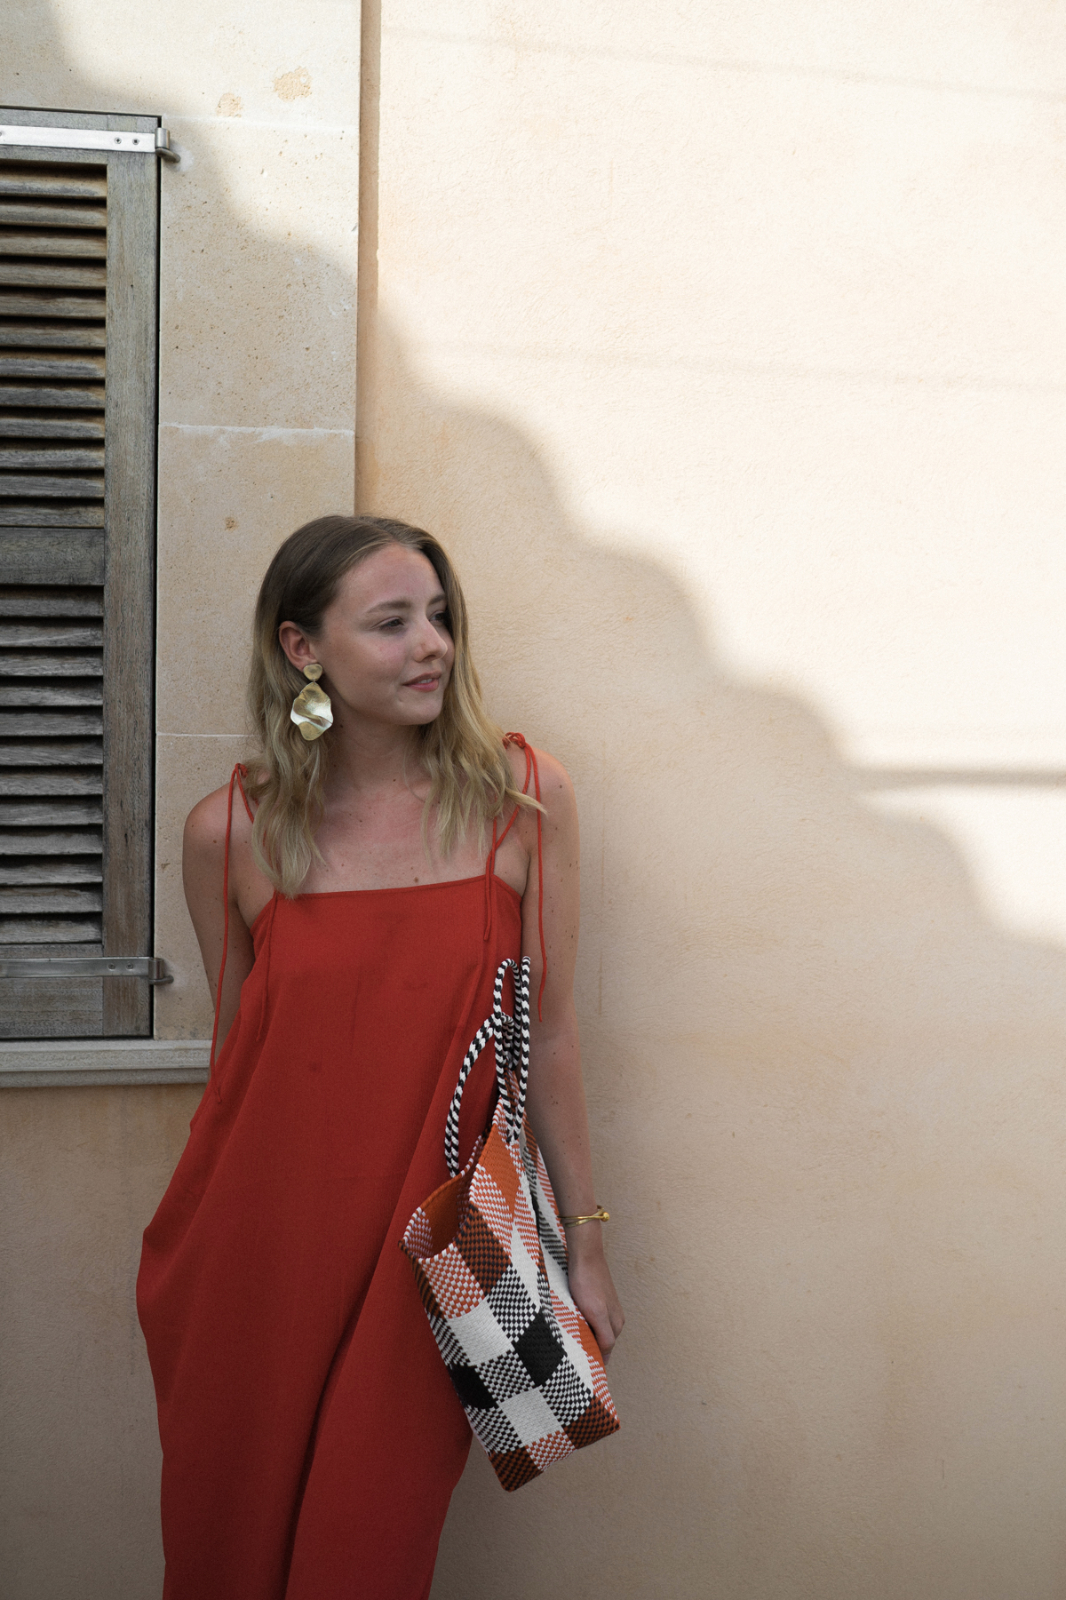 Fashionblogger_Berlin_Deutschland_Germany_Outfit_Mallorca_Red Dress